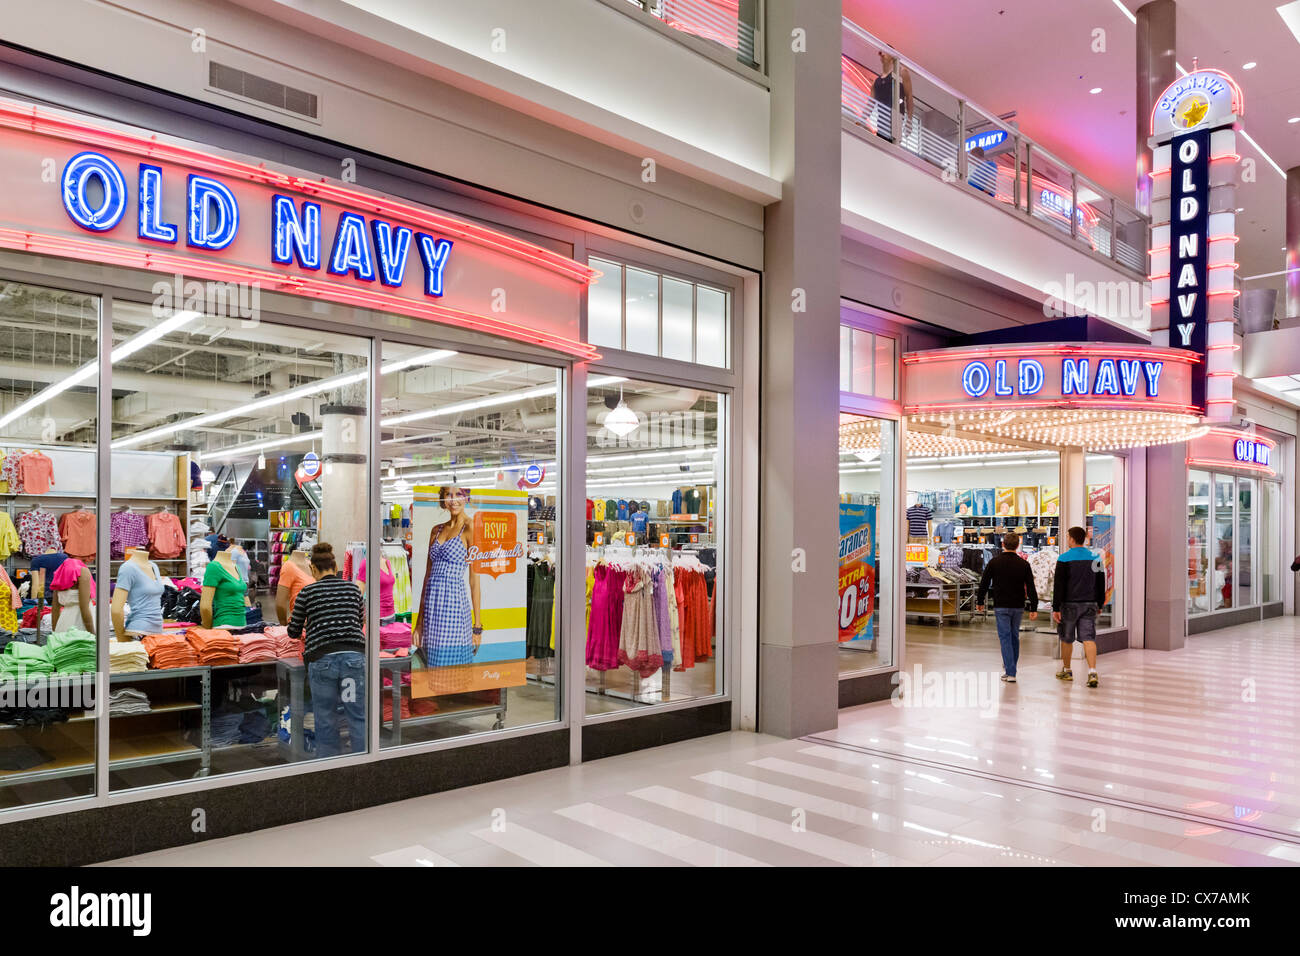 old navy store in the mall of america bloomington minneapolis stock photo royalty free image. Black Bedroom Furniture Sets. Home Design Ideas